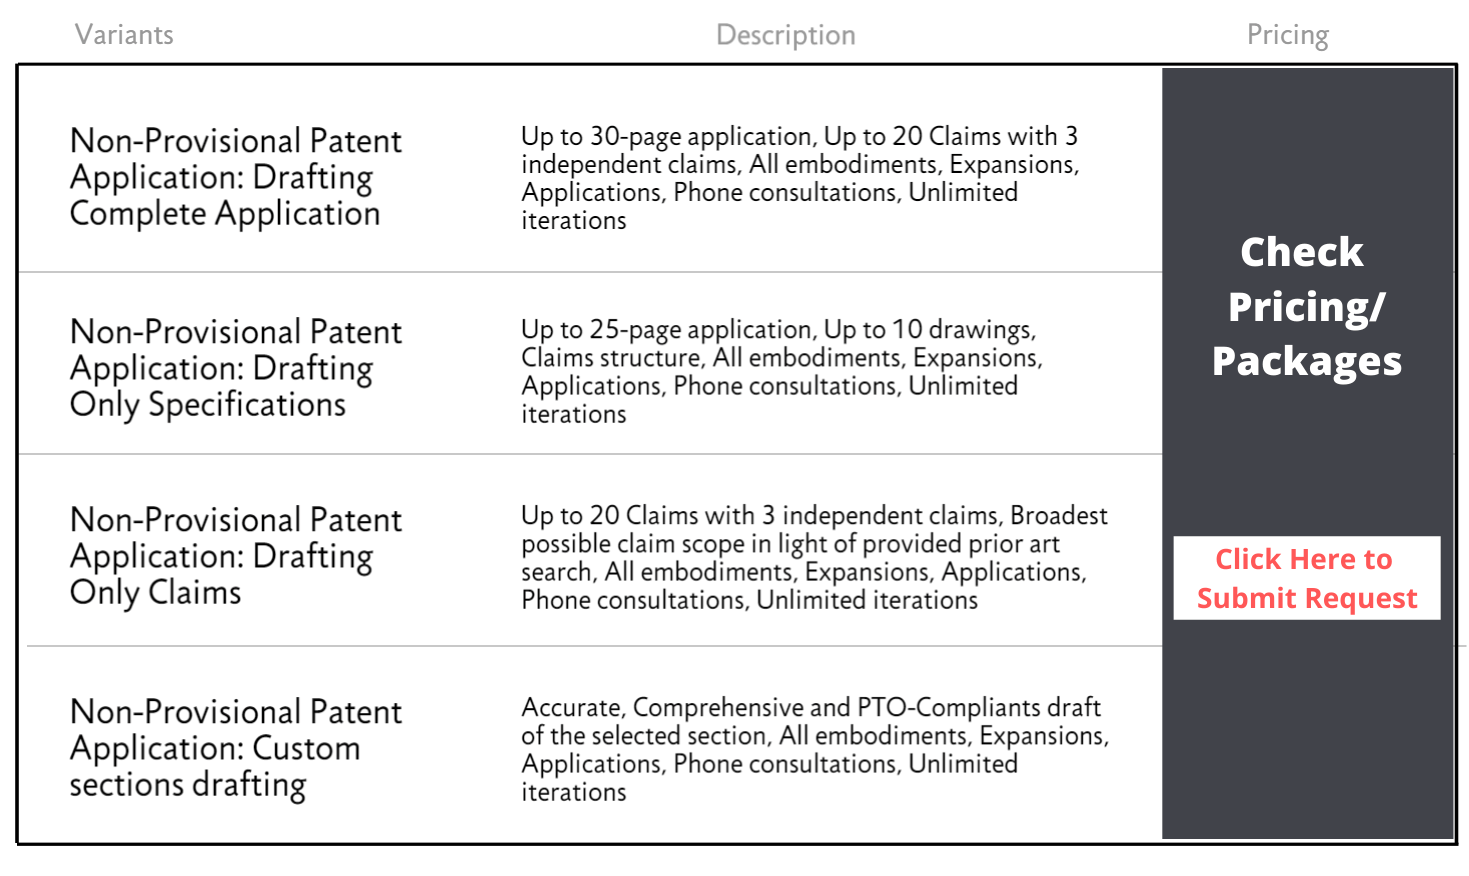 Non-Provisional Patent Application Drafting